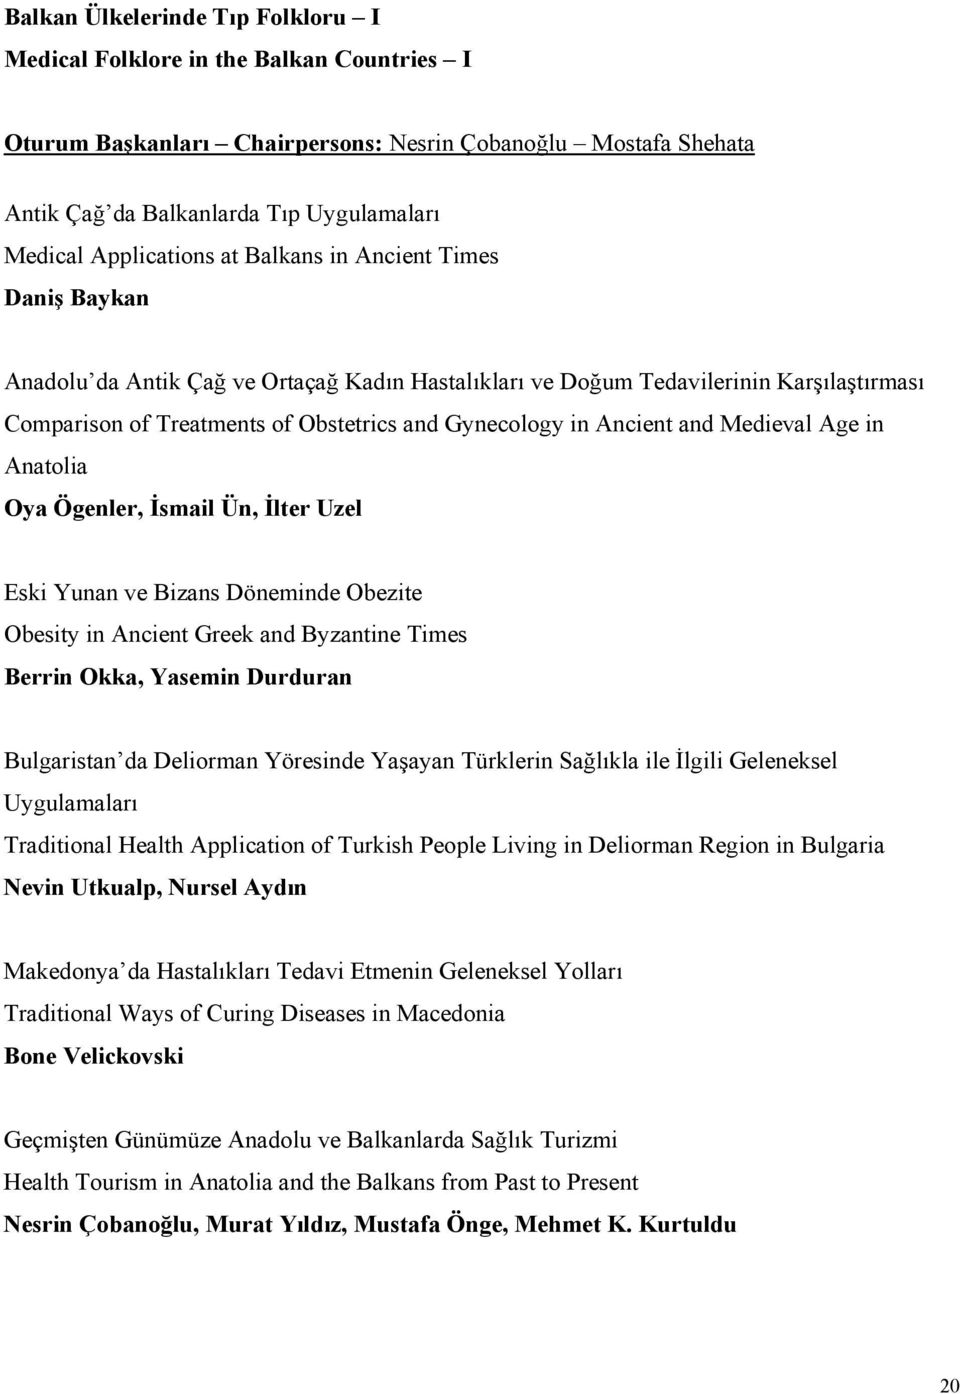 in Ancient and Medieval Age in Anatolia Oya Ögenler, İsmail Ün, İlter Uzel Eski Yunan ve Bizans Döneminde Obezite Obesity in Ancient Greek and Byzantine Times Berrin Okka, Yasemin Durduran